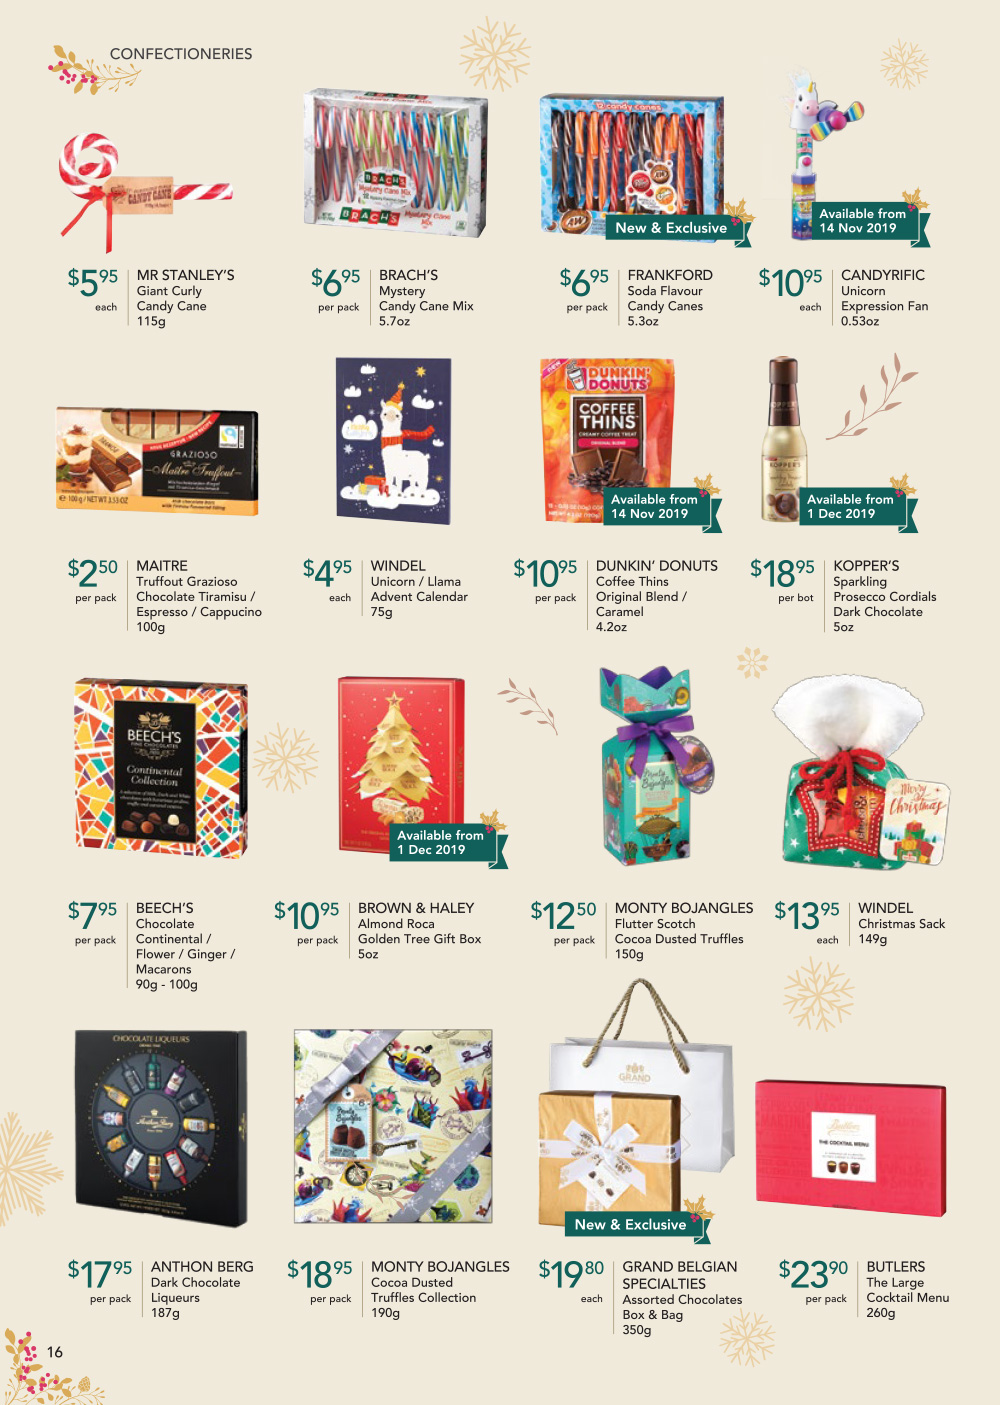 FairPrice Finest Christmas Catalogue 2019 - Confectioneries